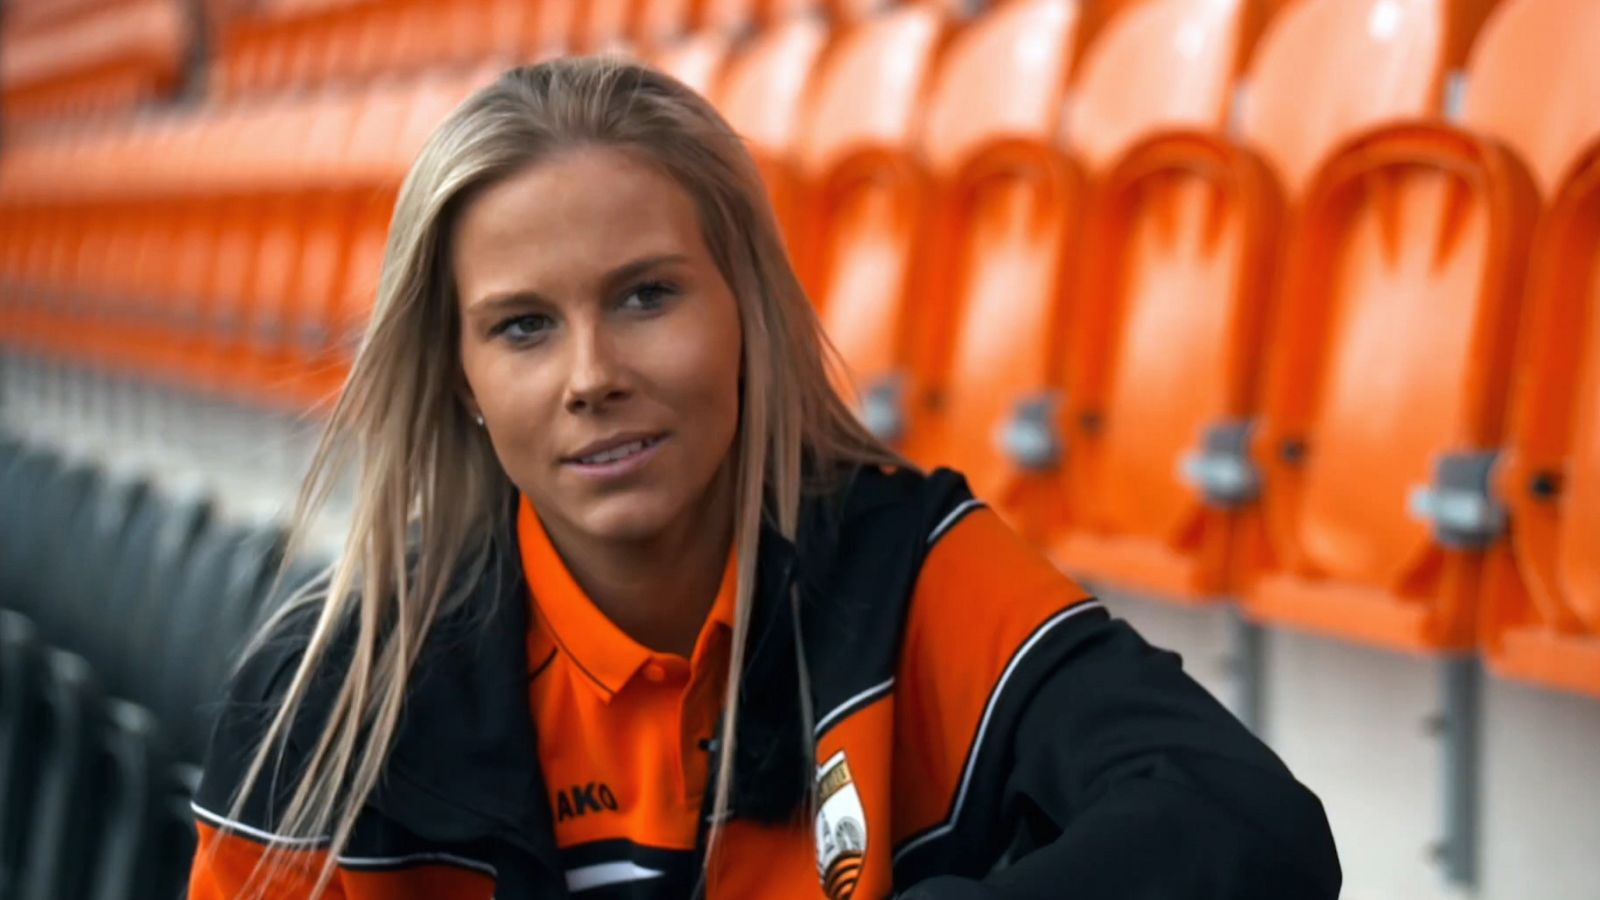 London Bees' Courtnay Ward-Chambers on mental health battle and physical struggle to regain full feeling in her leg